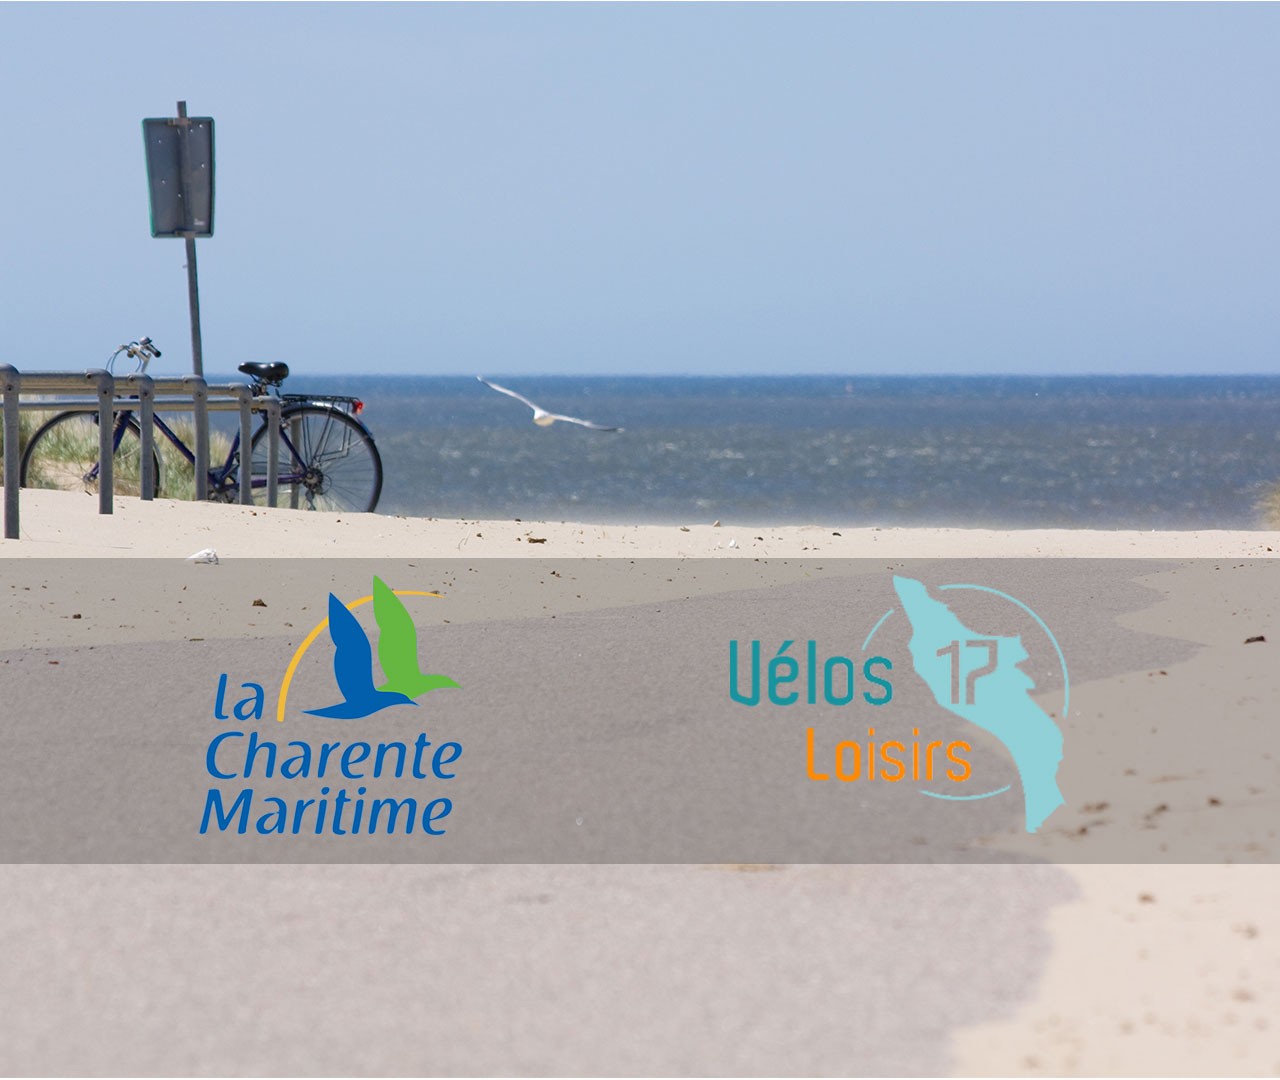 Charente-maritime-velo-excellence-famille-Velos-17-Loisirs